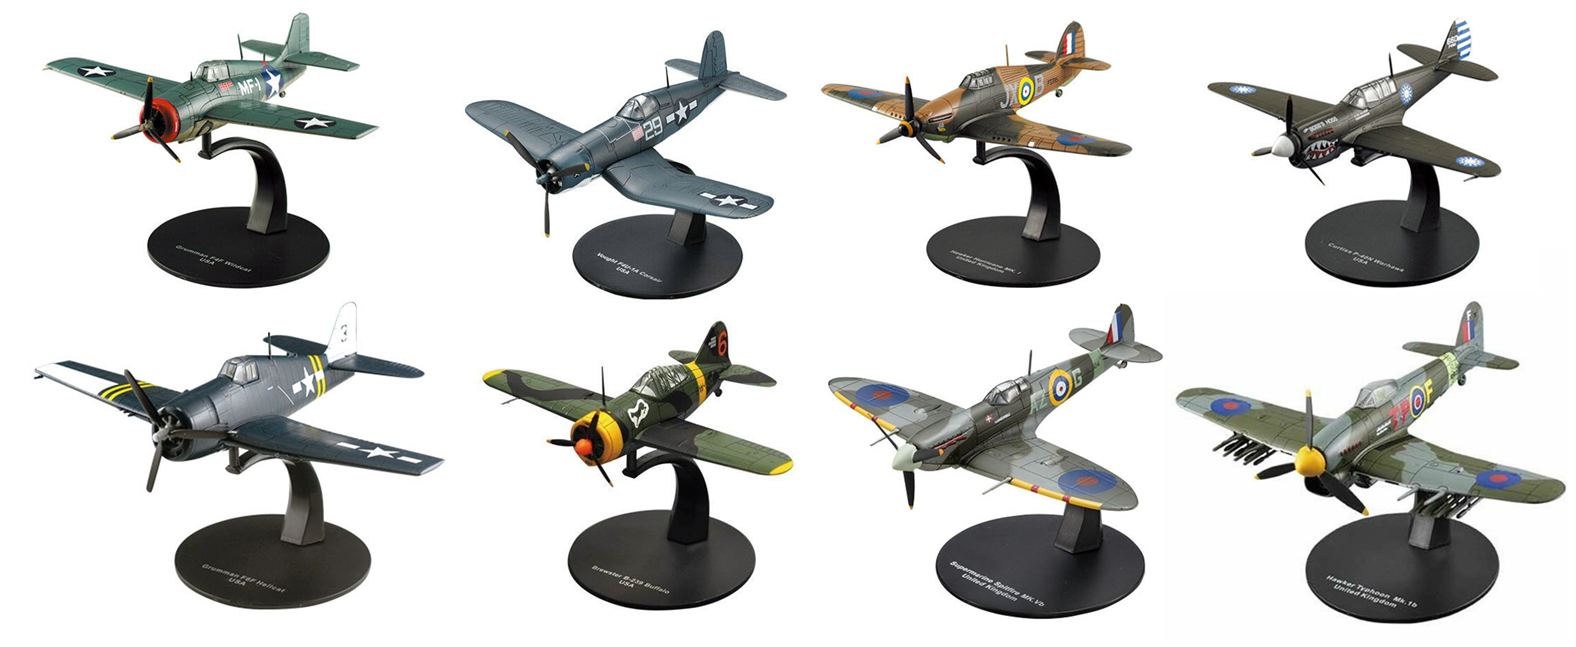 Lot of 8 aeroplanes raf and us  air force ww2 1 72 military diecast deagostini  pas cher en ligne